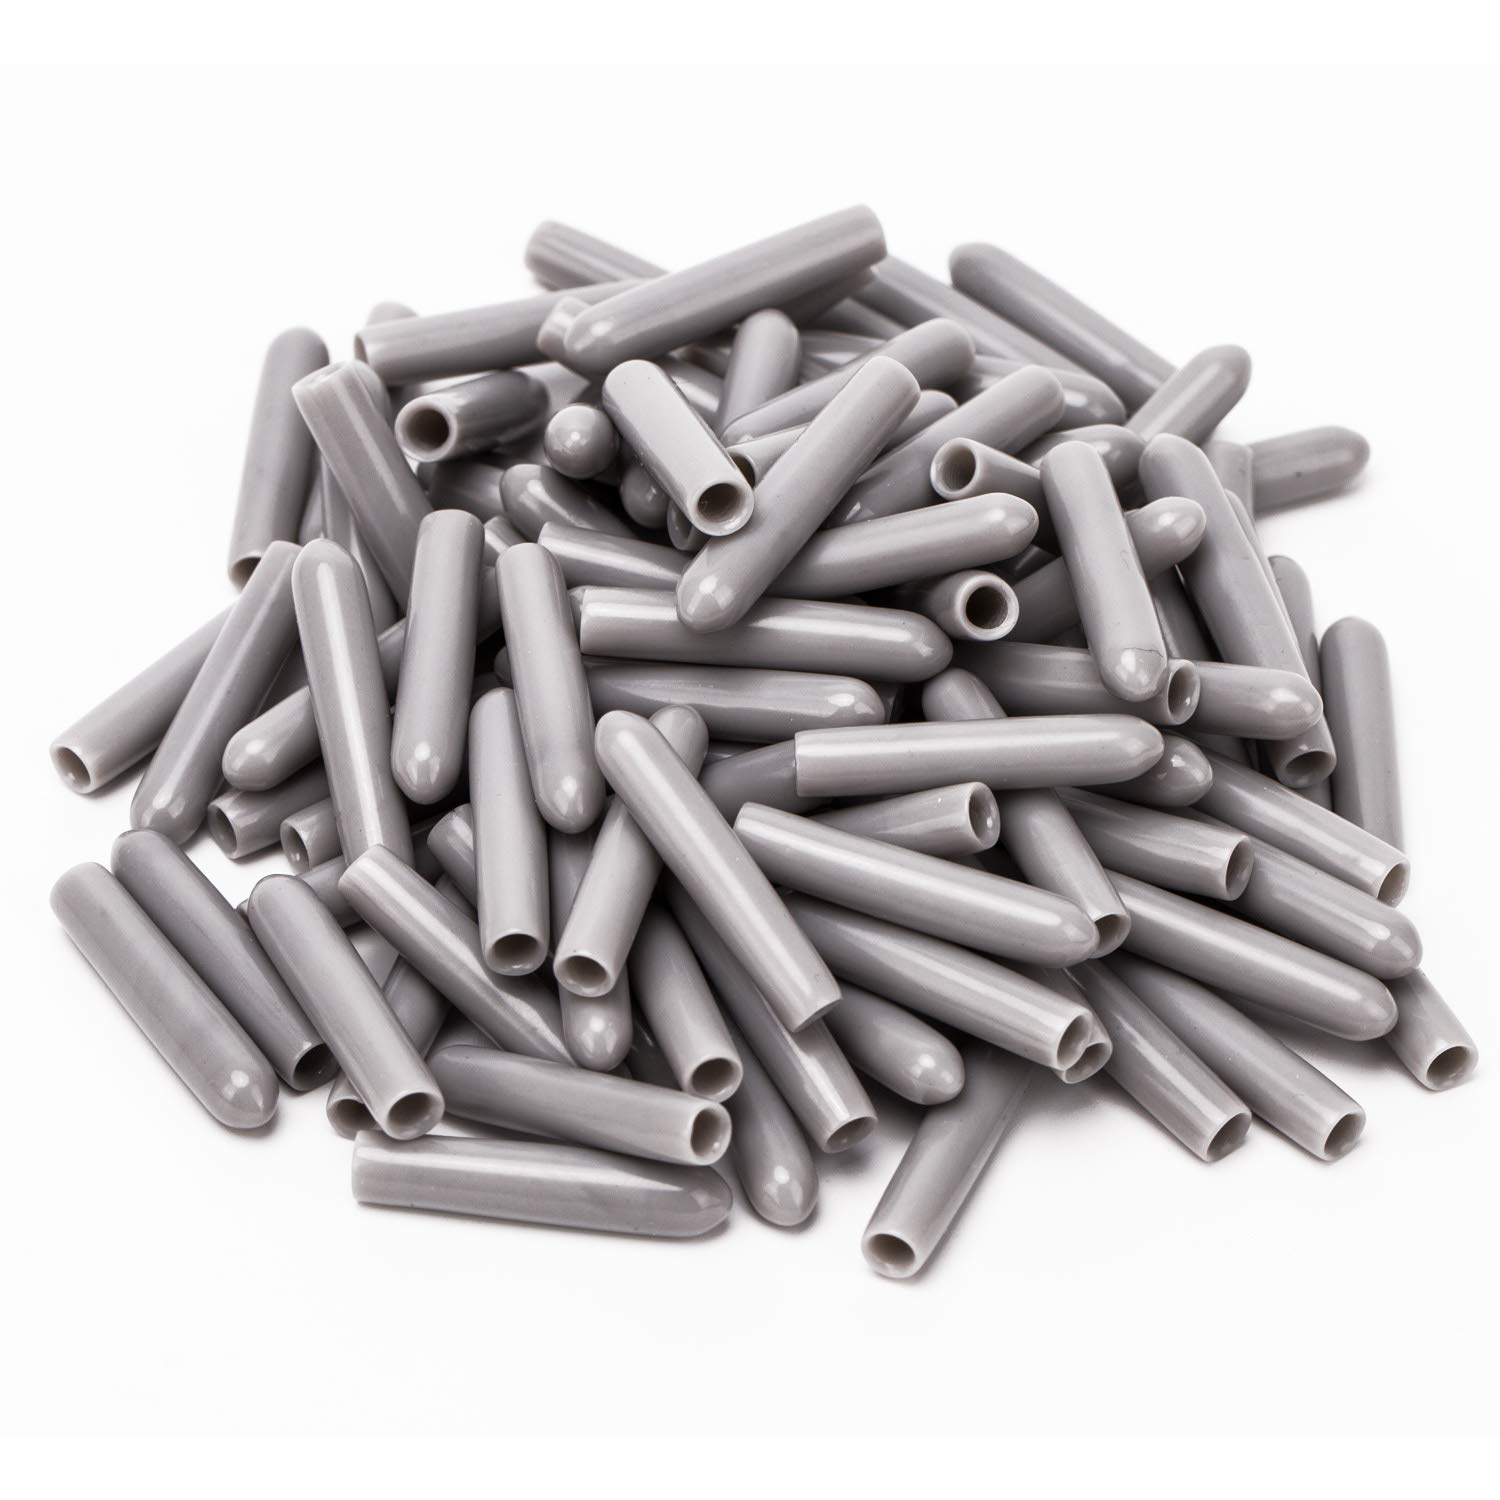 Luter 100 pieces Dishwasher Rack Tine Prong Repair End Cover Caps Tip Caps Repair Tip Tine Kit Antirust,Gray